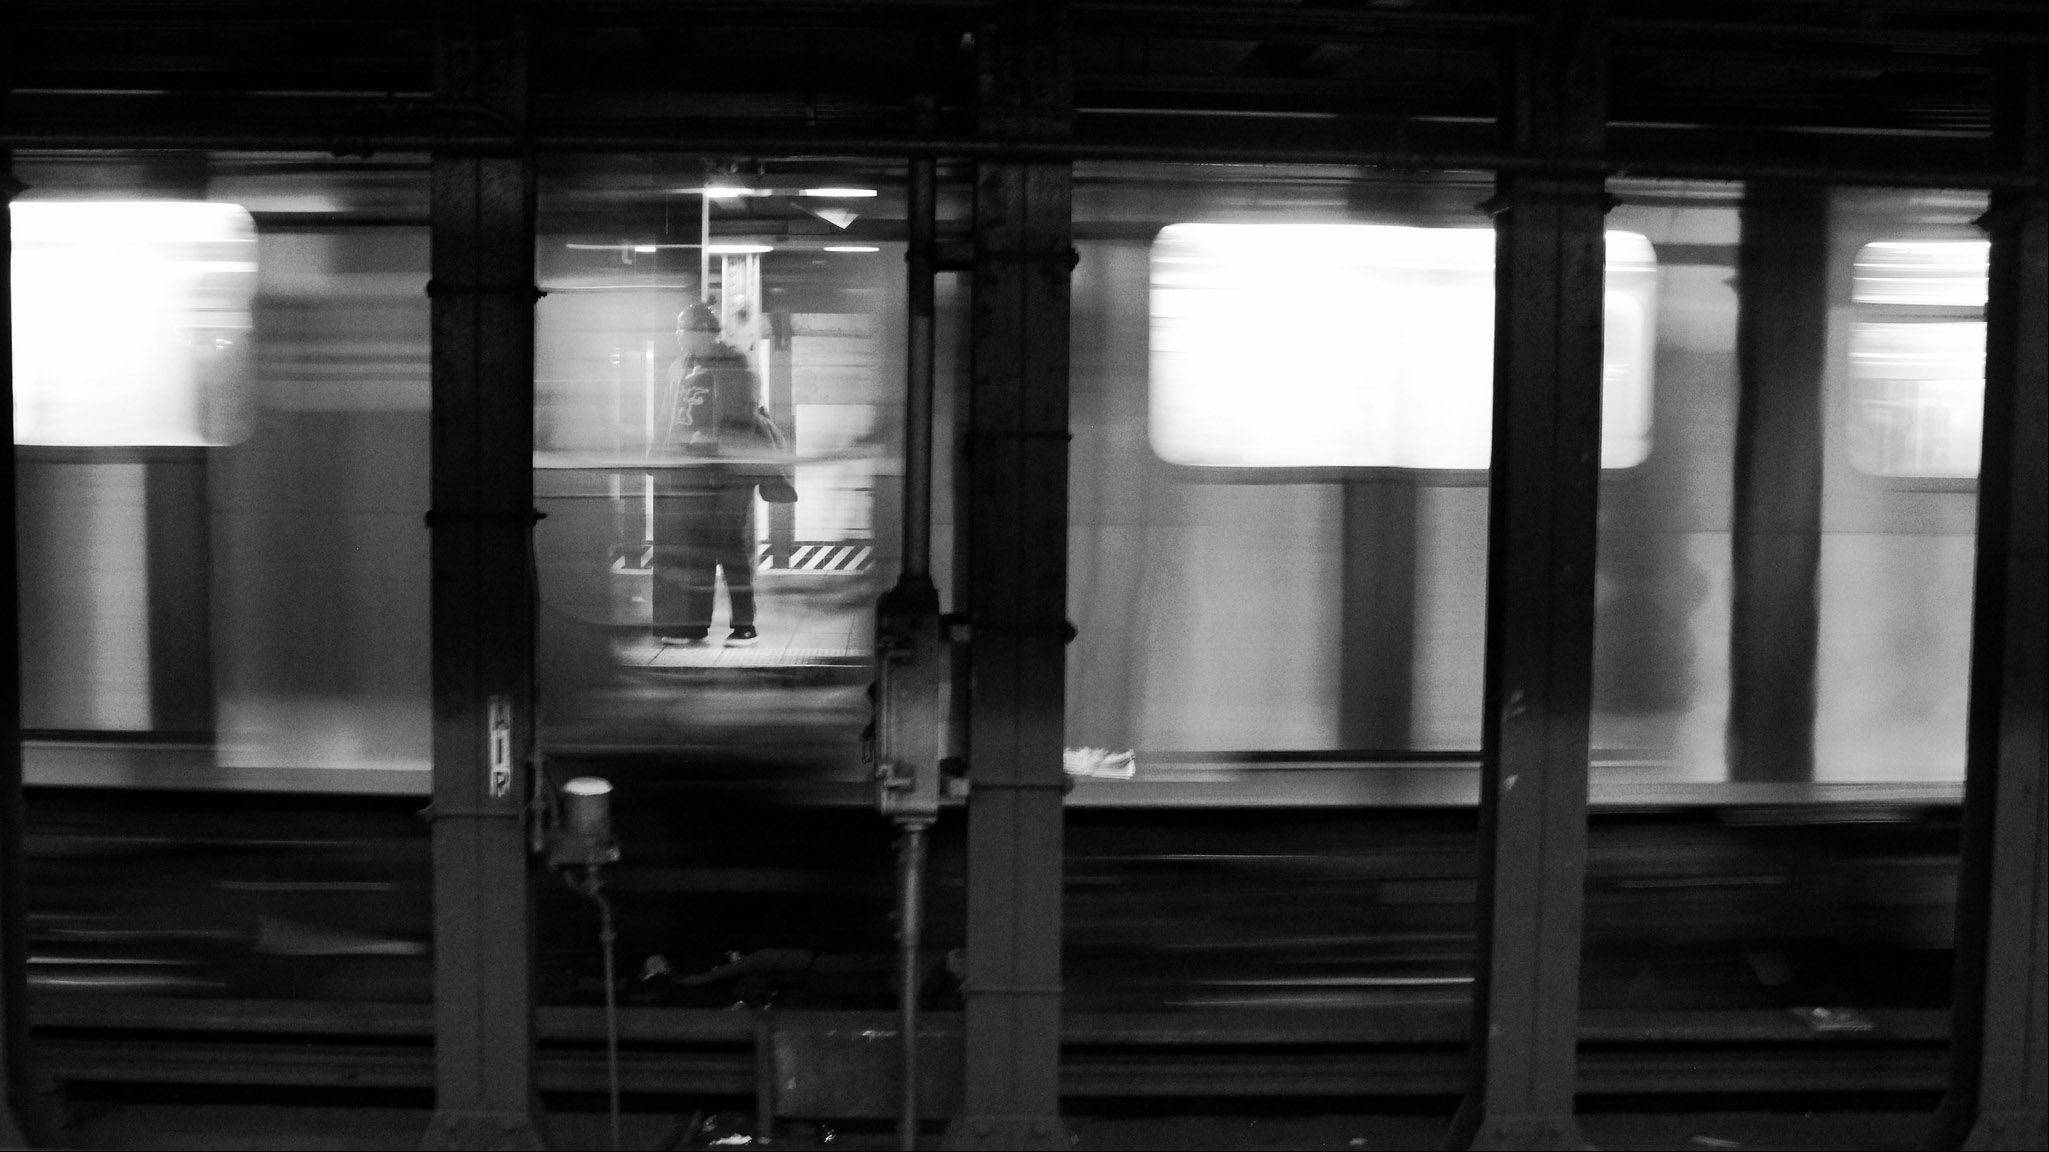 Waiting for the Subway is a B&W image taken at the Times Square stop in New York. I used a slow shutter speed to capture the motion and multiple frames were taken to capture the waiting passenger in between the blur of the cars.